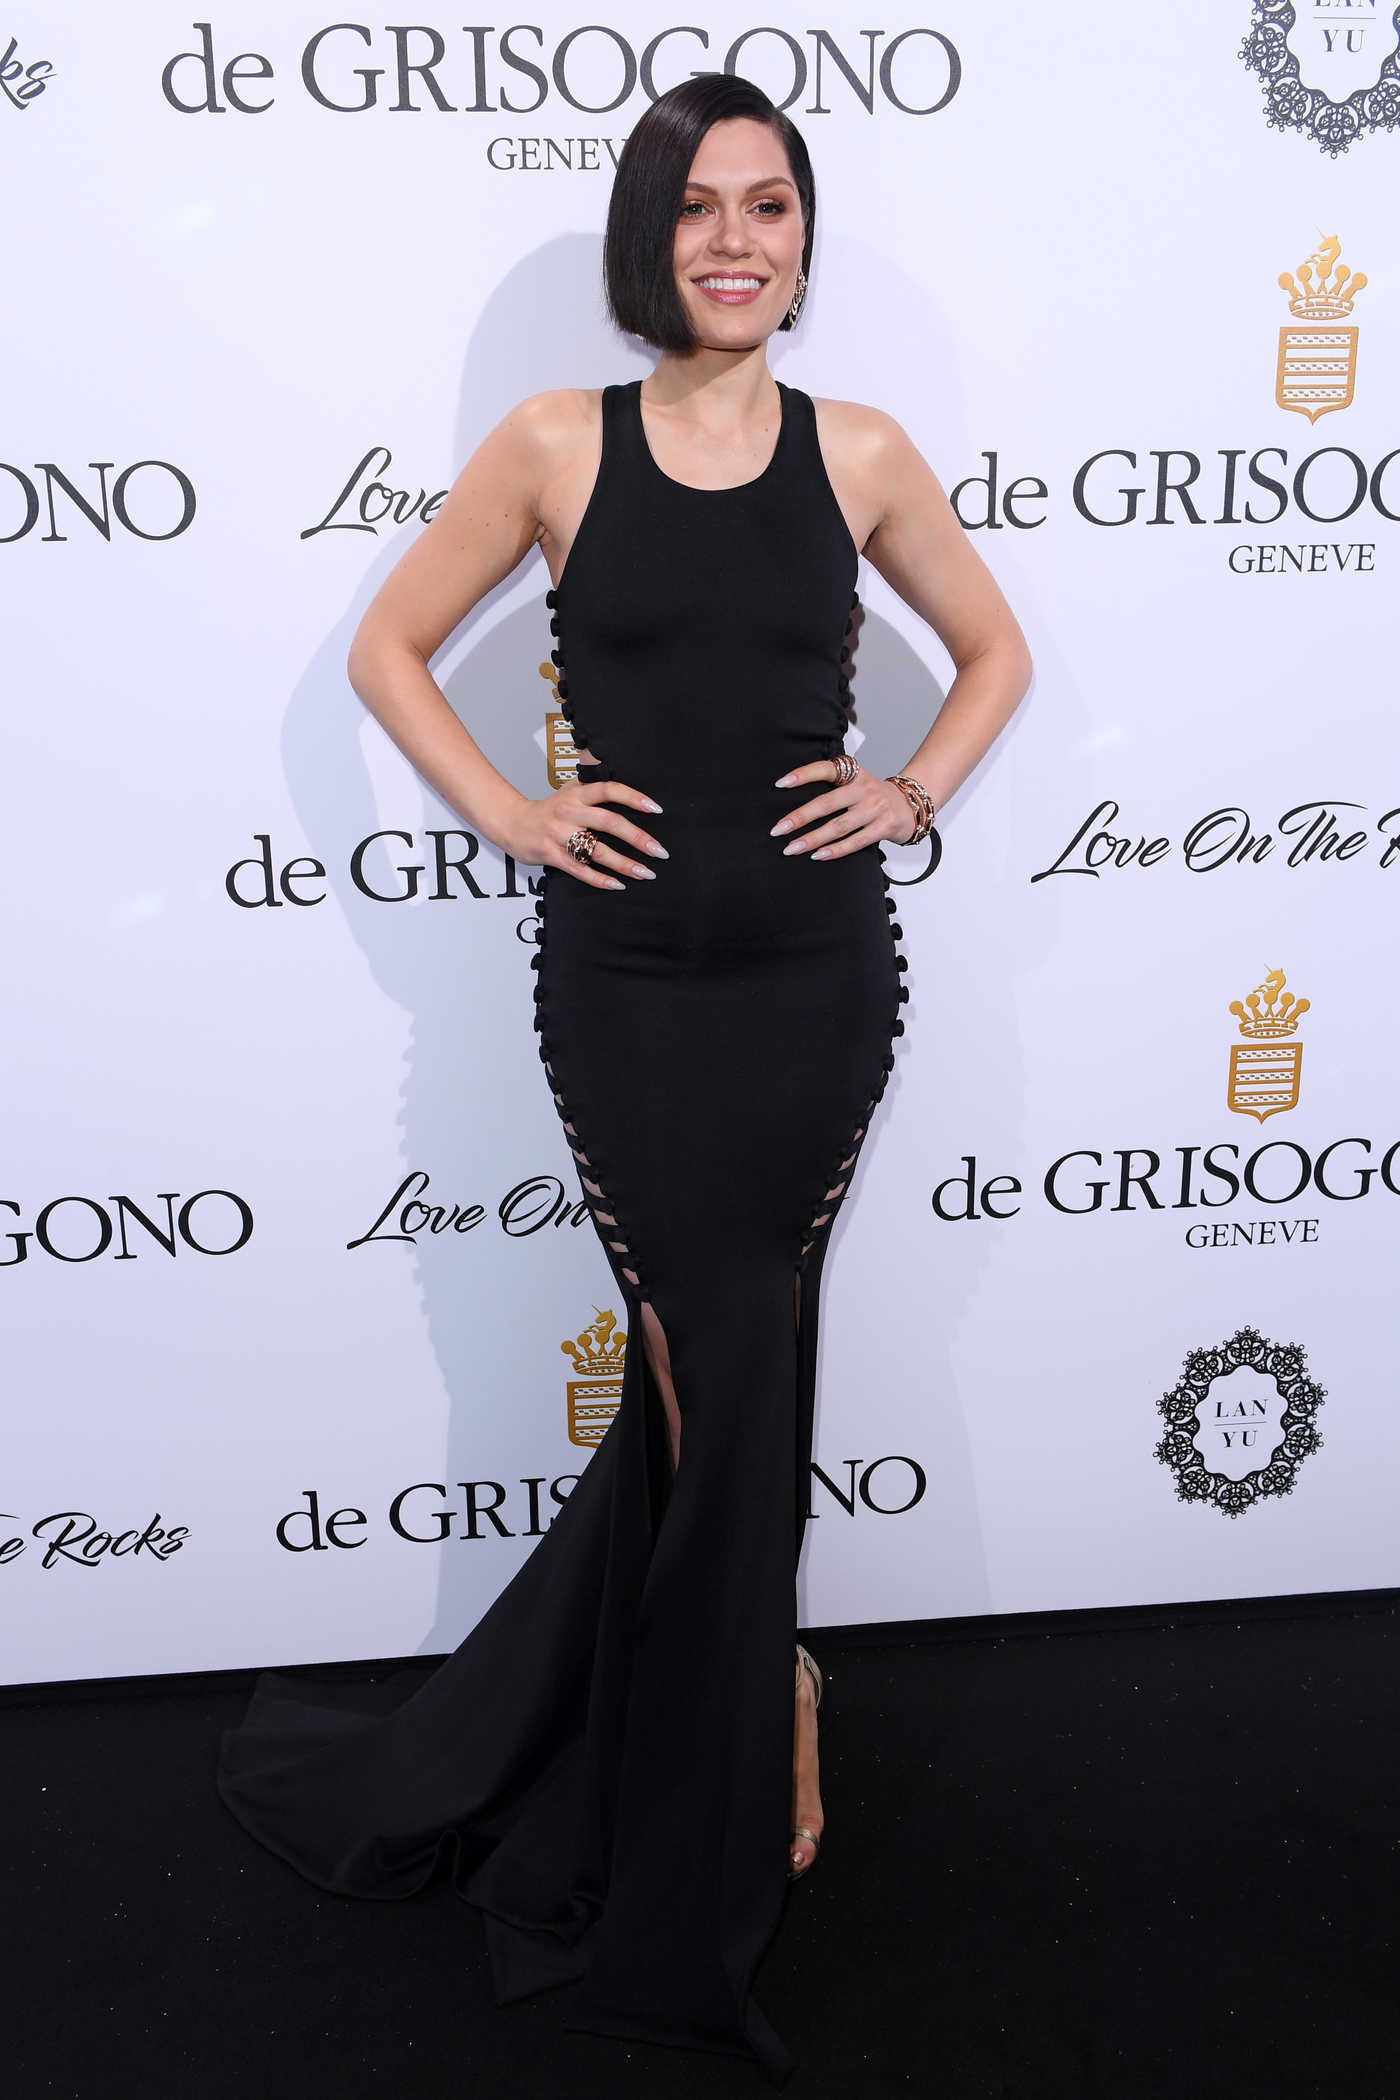 Jessie J at De Grisogono Party During the 70th Cannes Film Festival 05/23/2017